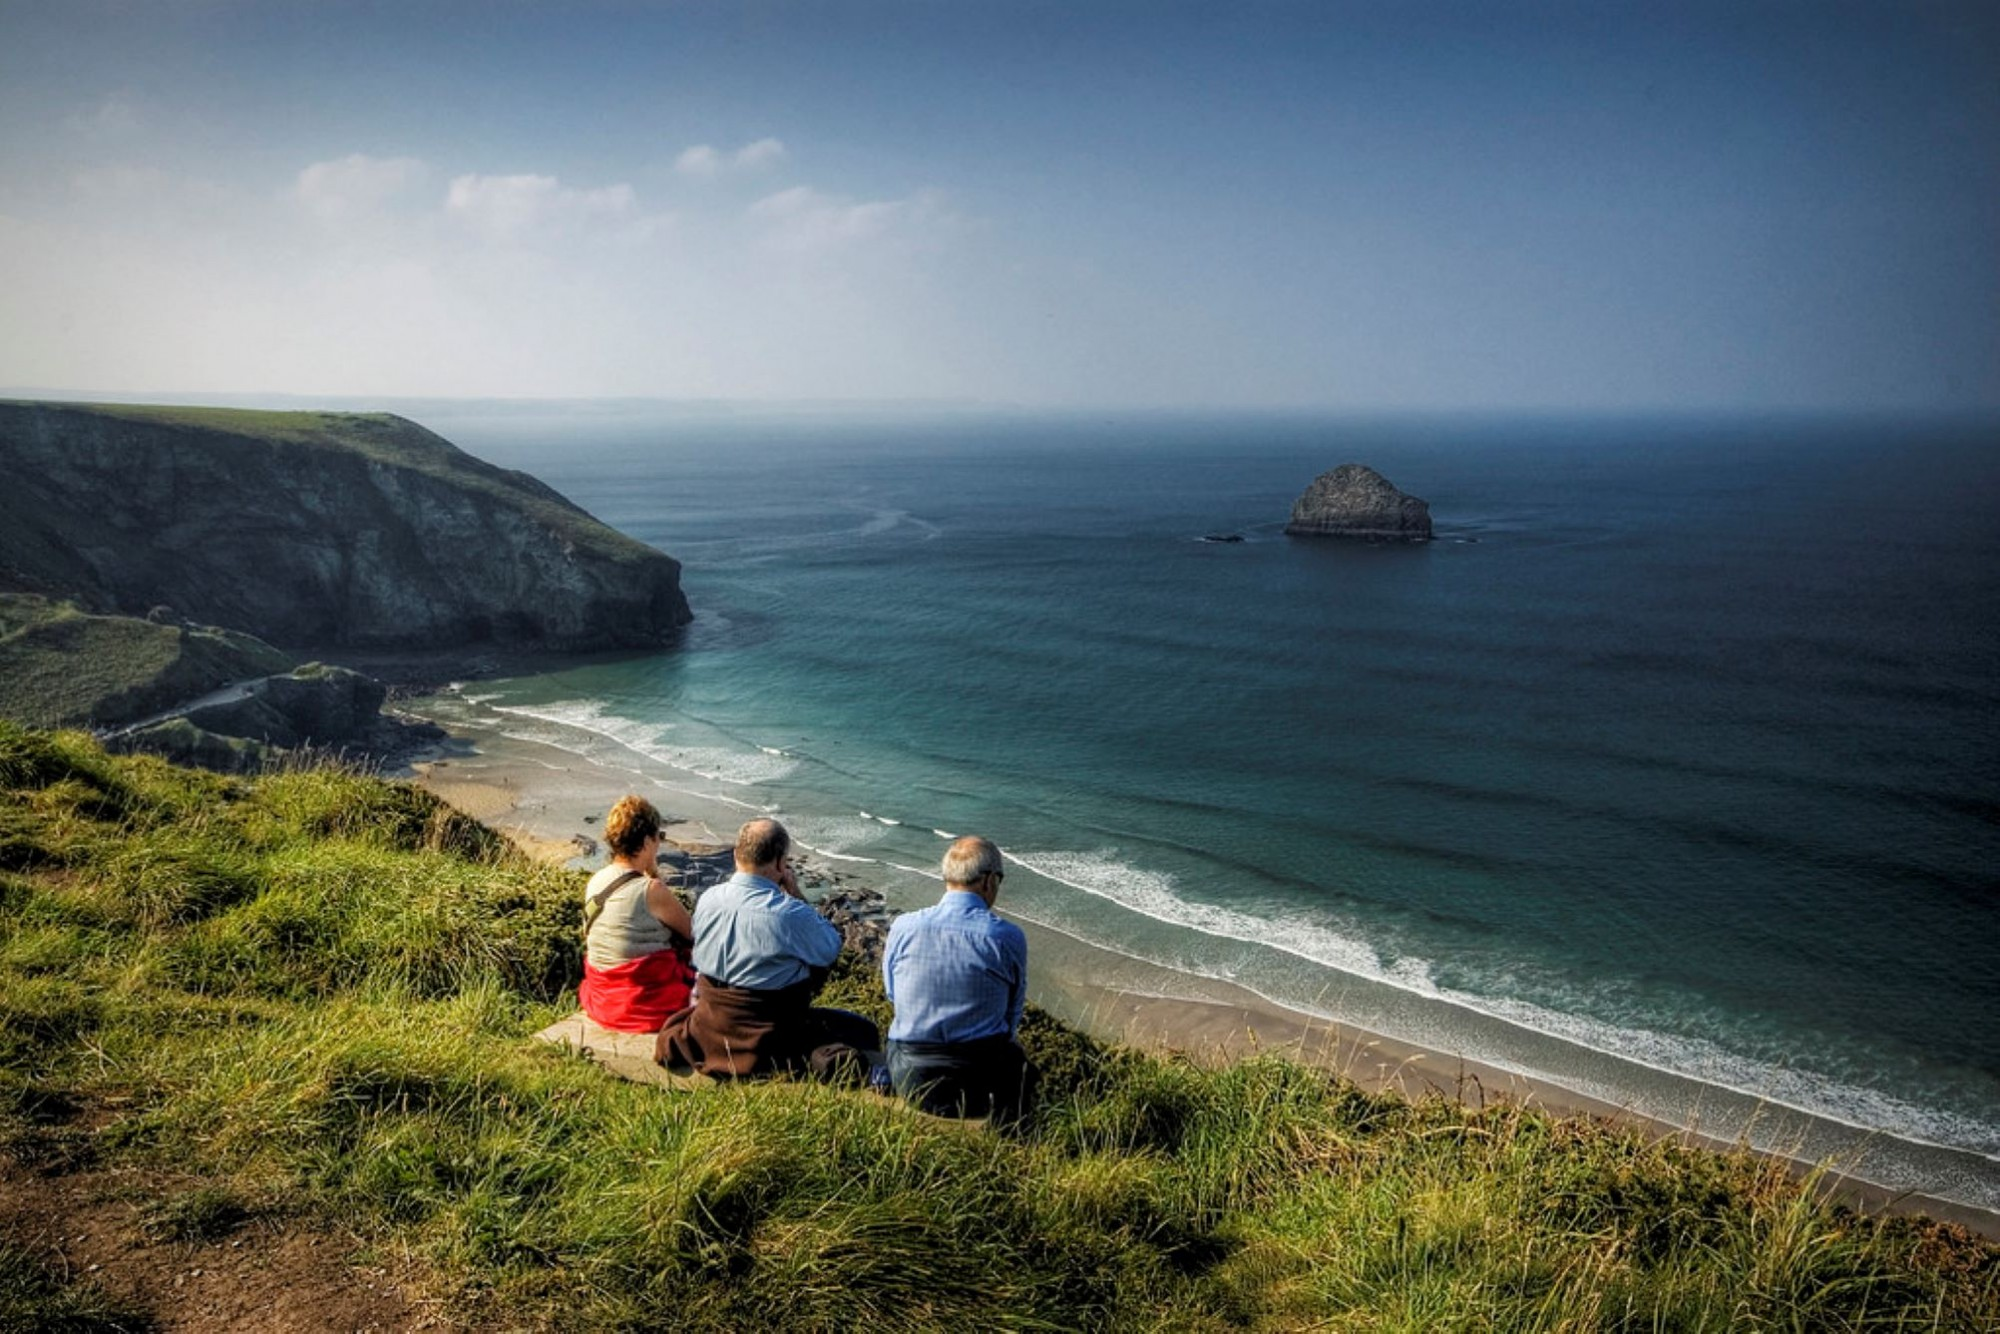 The sea at Trebarwith Strand. Photographer Dan Martin, Saltash